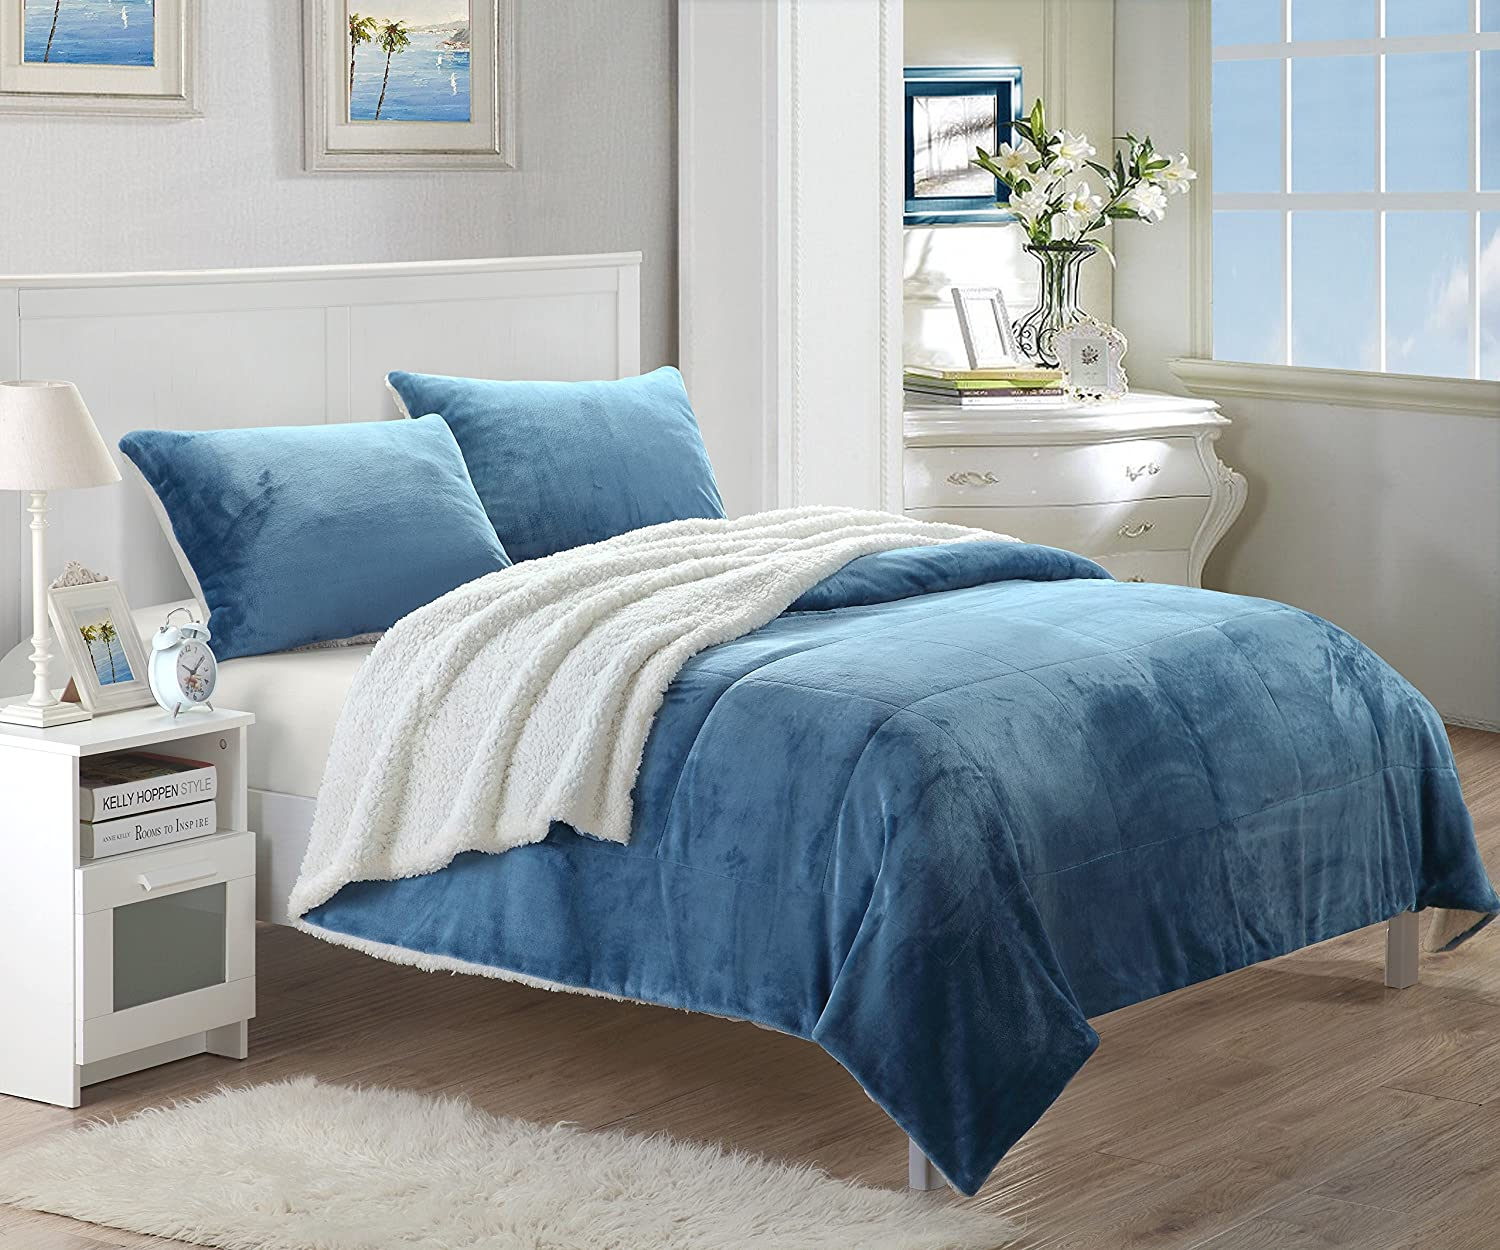 Chic Home Evie 2 Piece Blanket Set Soft Sherpa Lined Microplush Faux Mink with Sham, Twin XL Blue